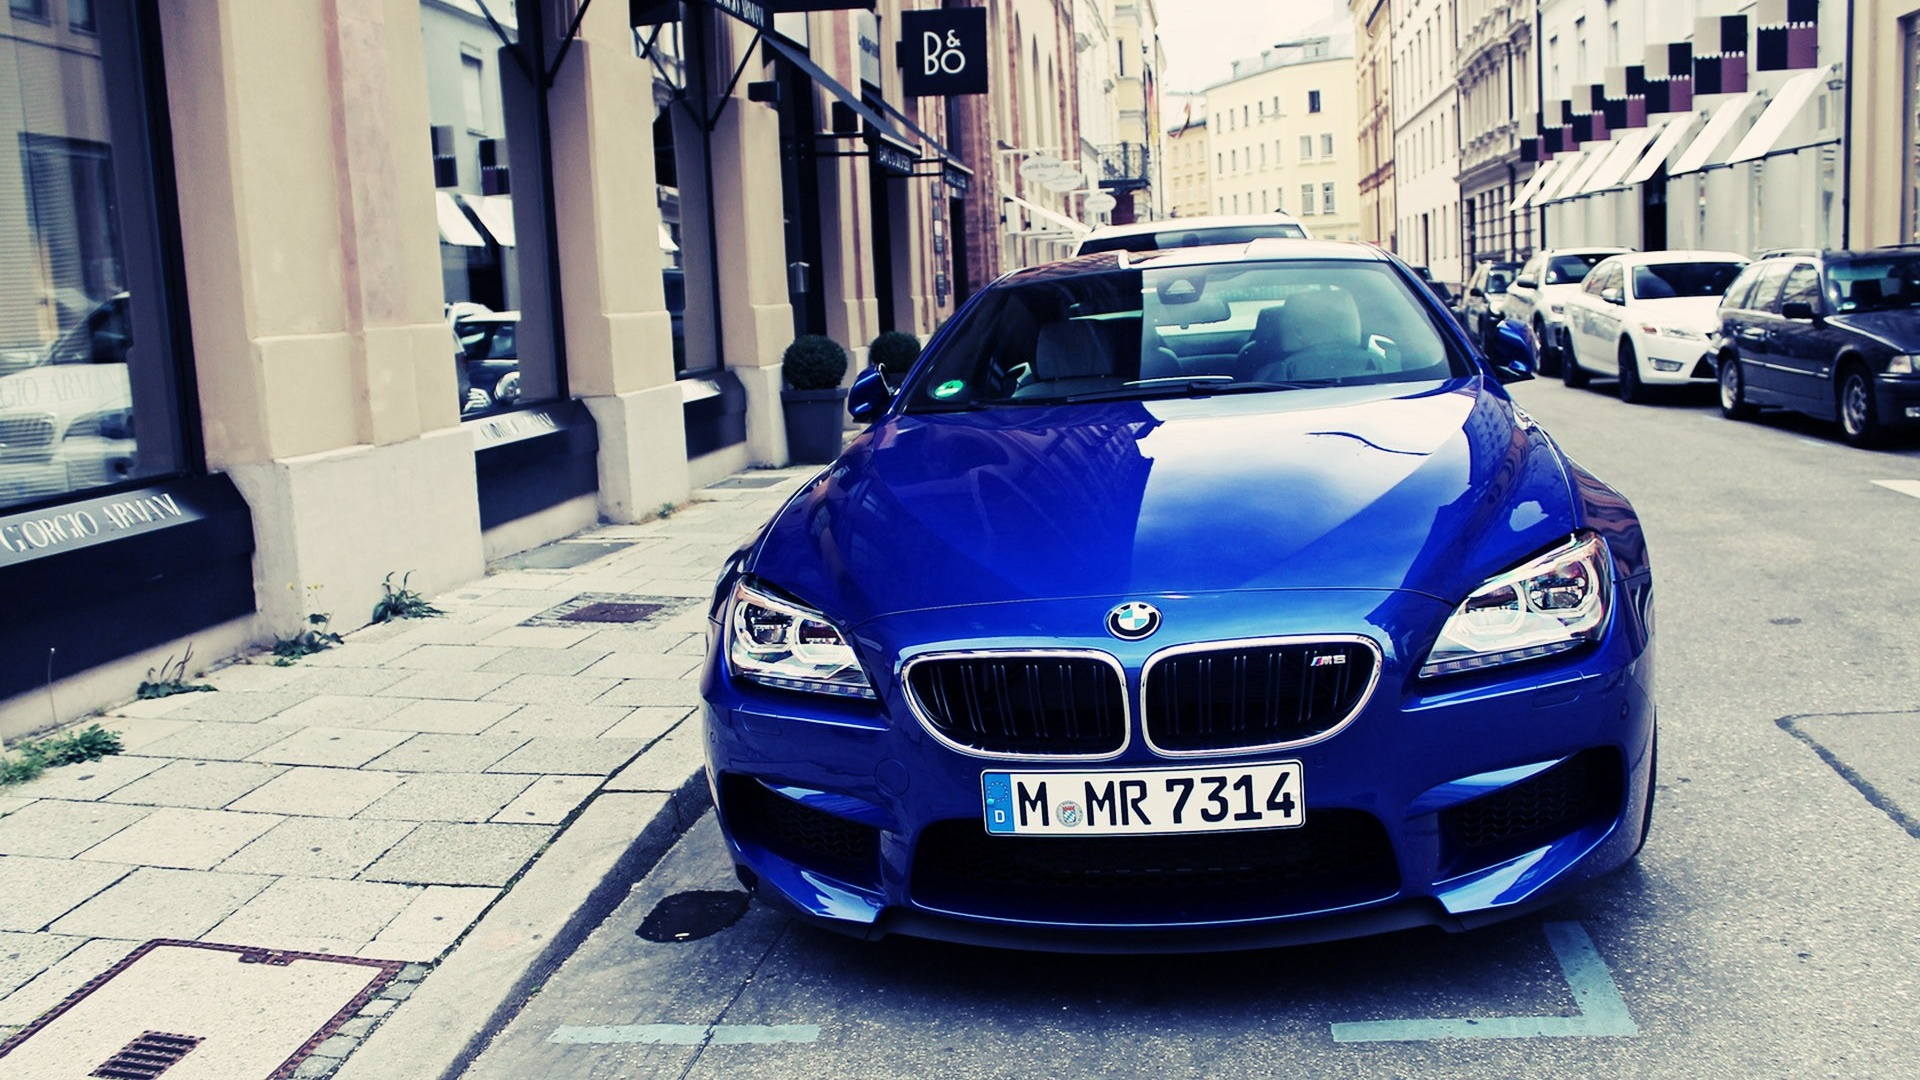 Hd wallpaper iphone 6 - 1920x1080 Blue Bmw M6 On The Streets Desktop Pc And Mac